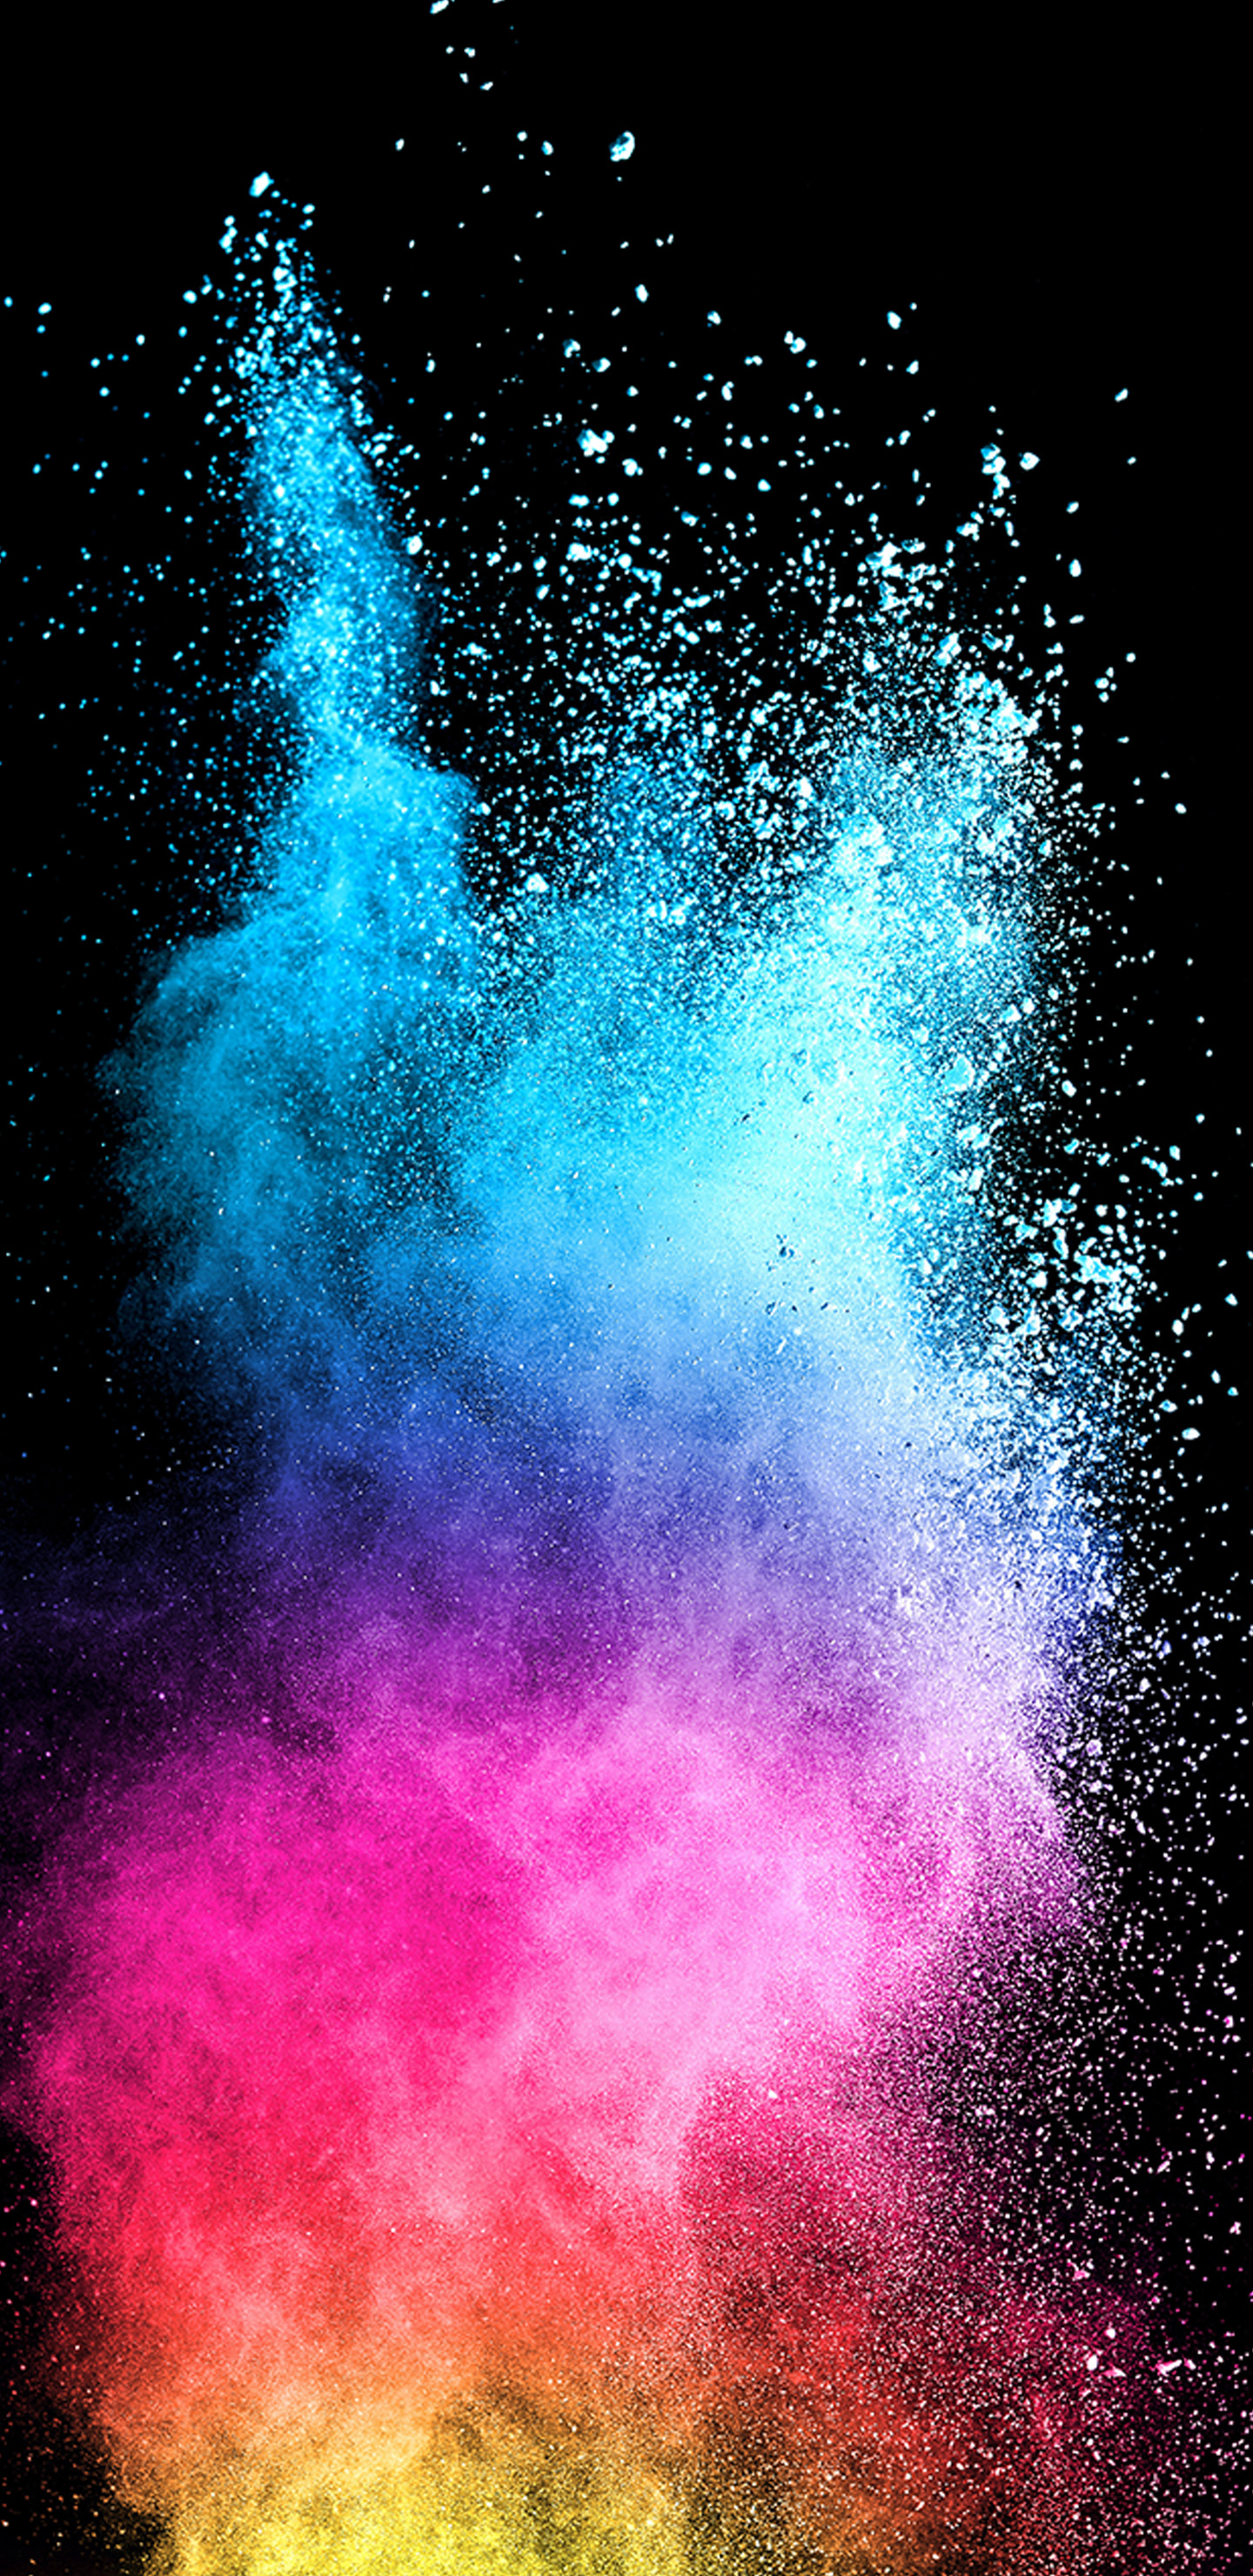 Wallpaper Samsung Galaxy S9: Abstract Colorful Powder With Dark Background For Samsung